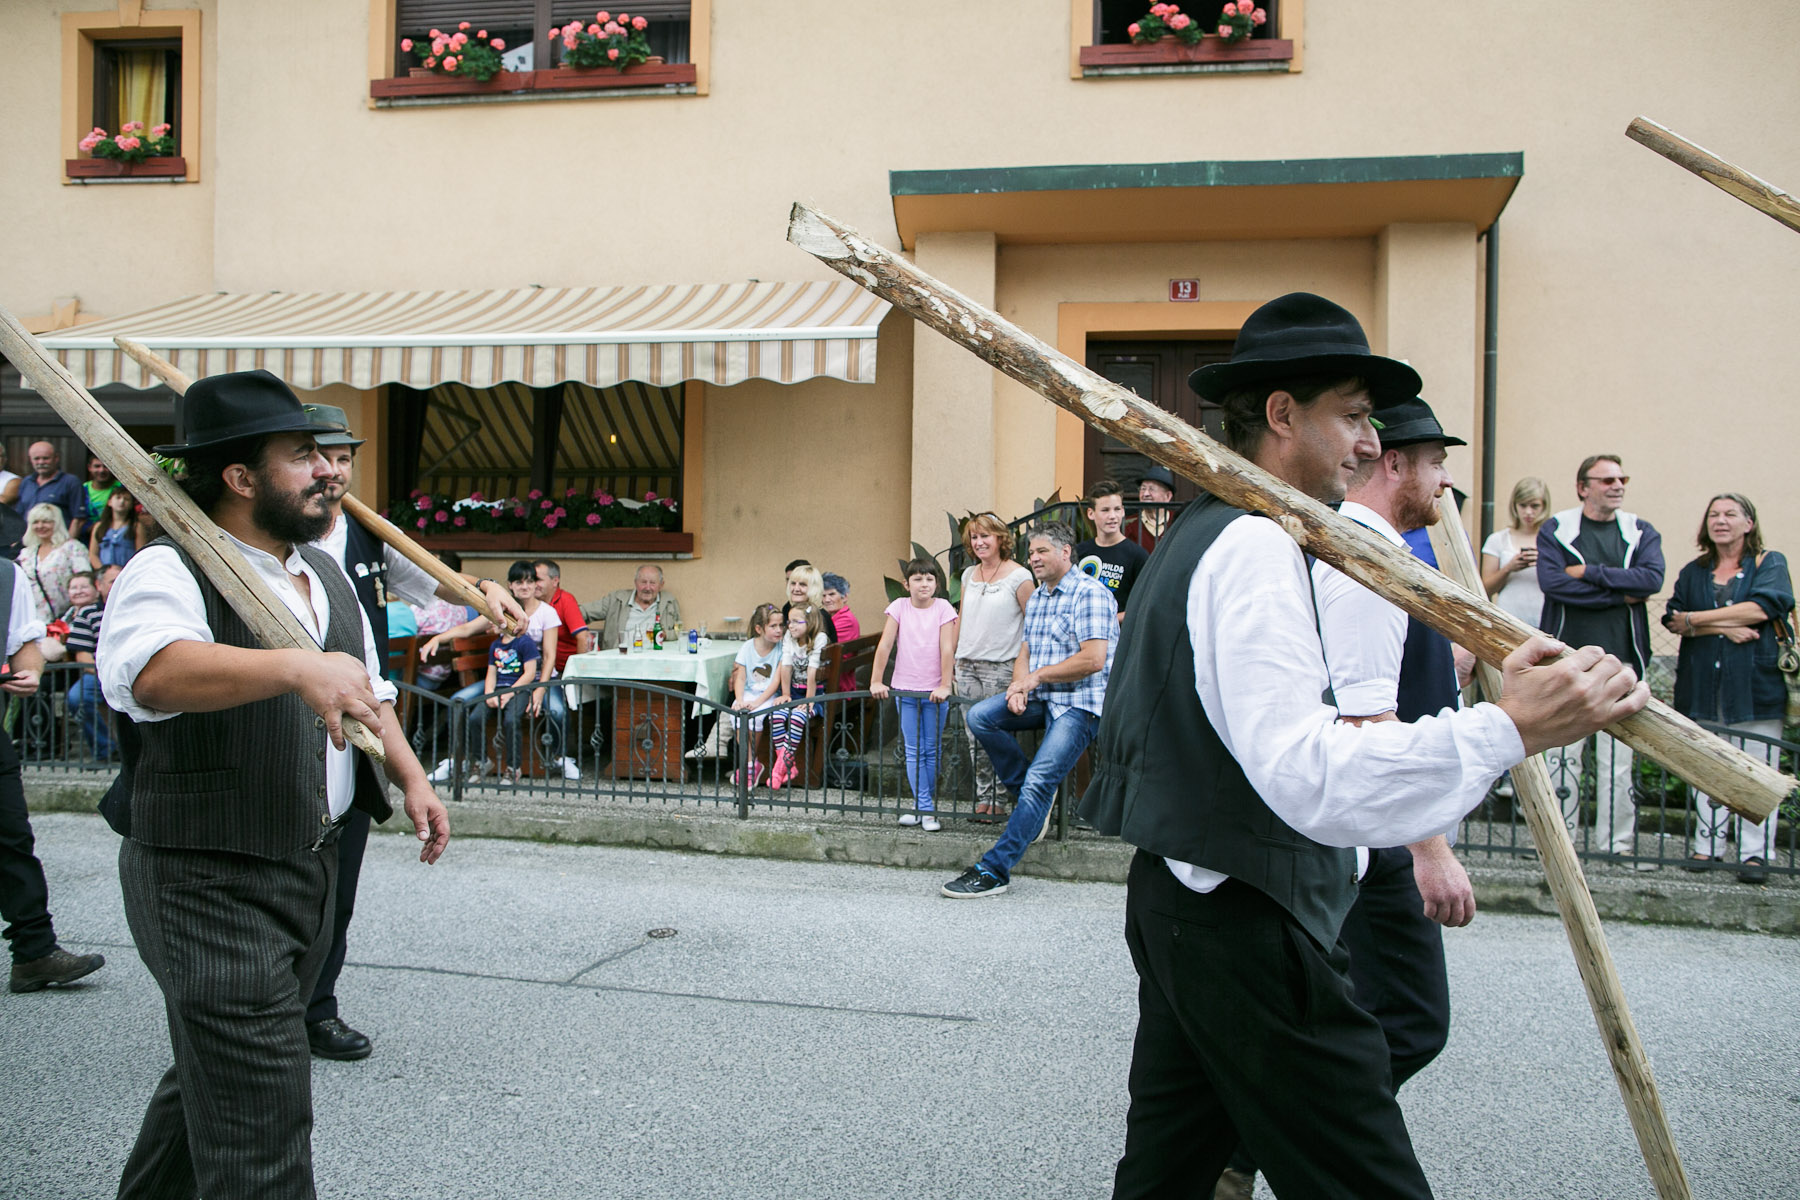 Raftsmen march in a procession during the 55th Raftsmen Ball in Ljubno ob Savinji, Slovenia.